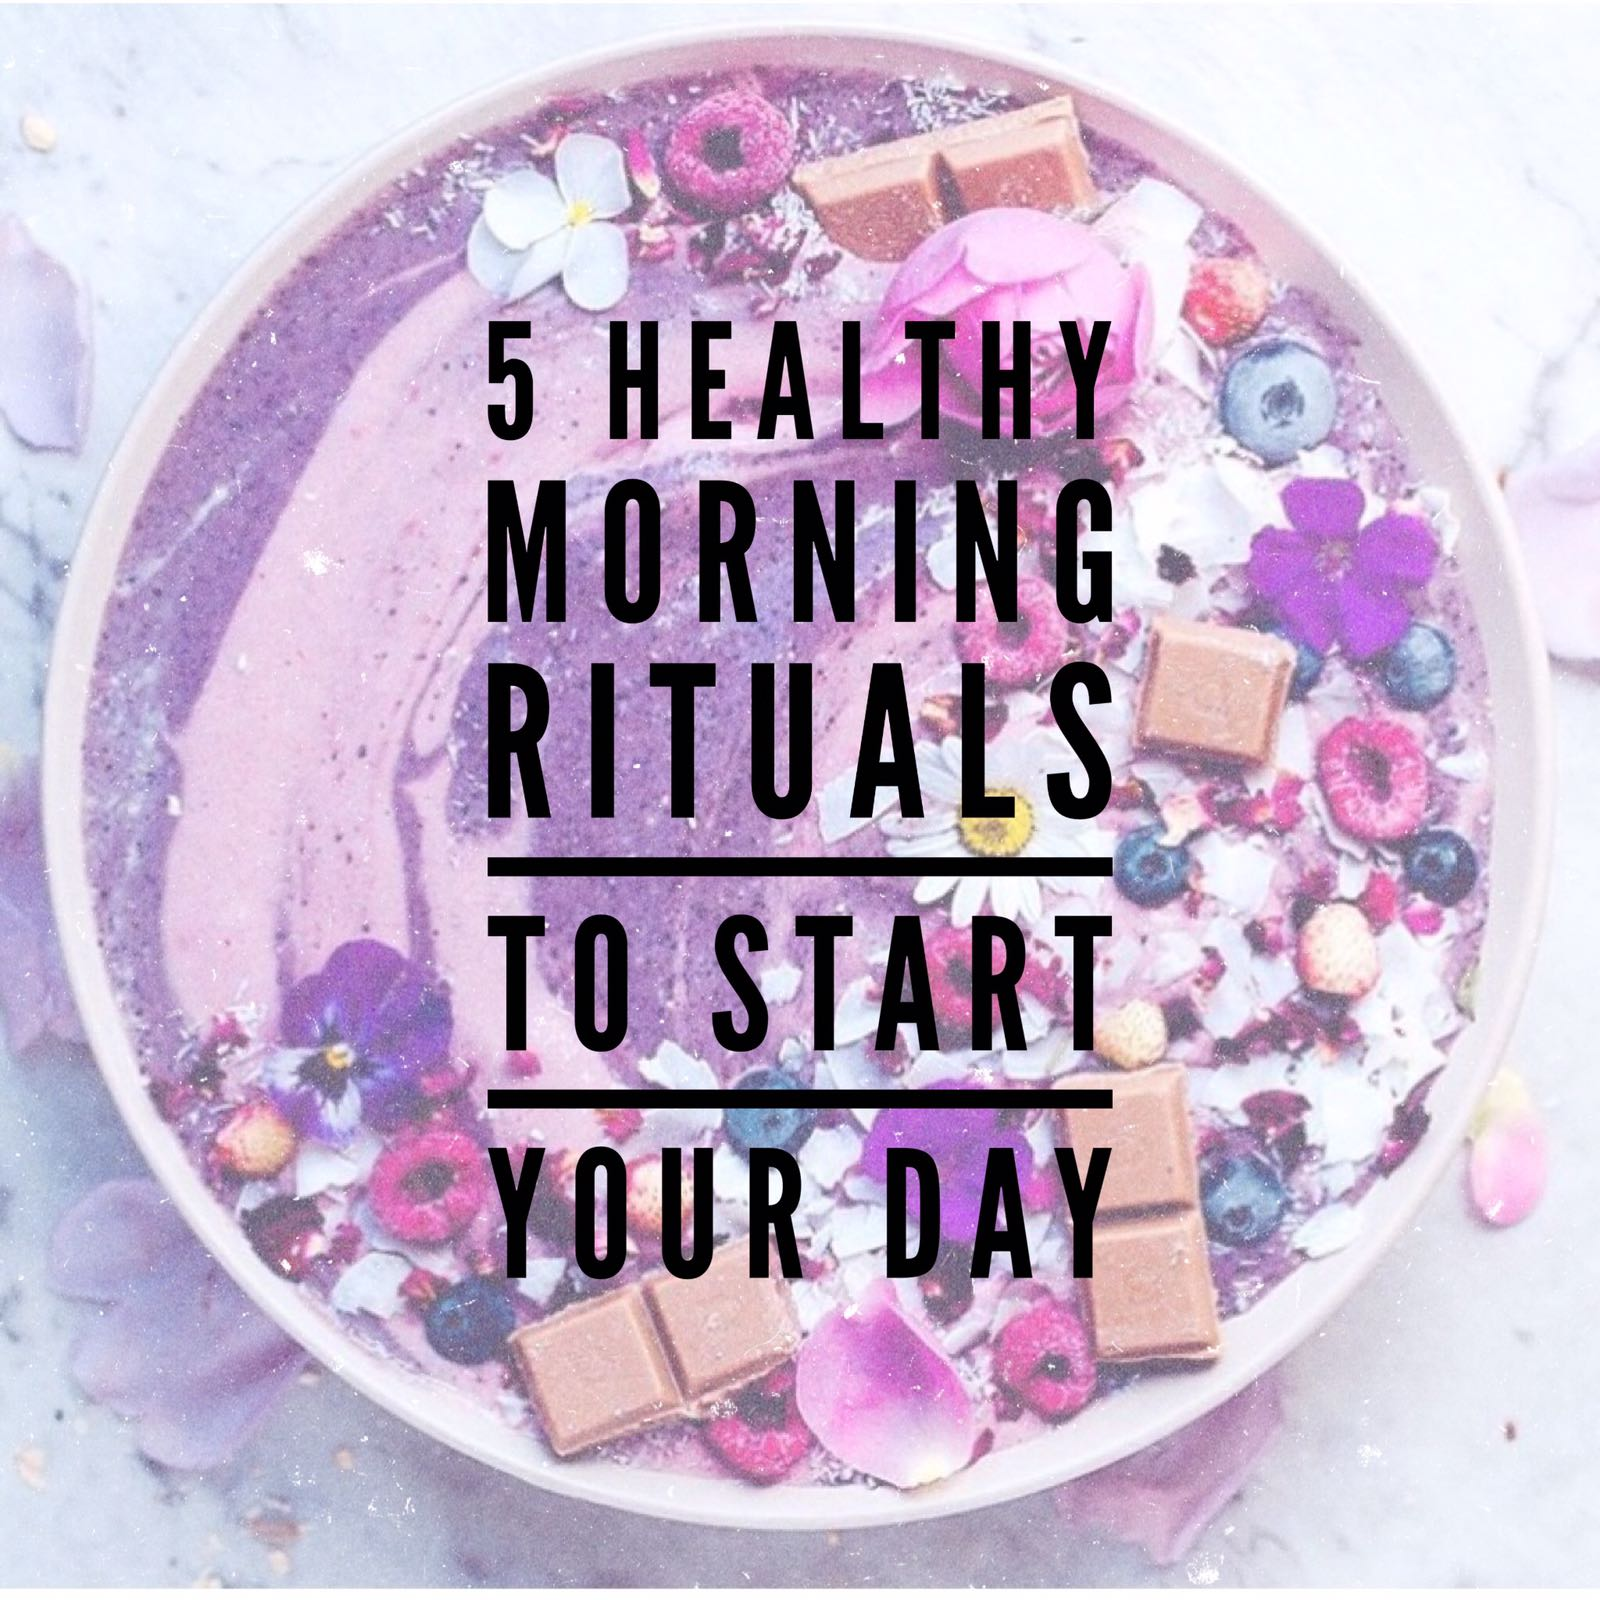 5 HEALTHY MORNING RITUALS TO START YOUR DAY